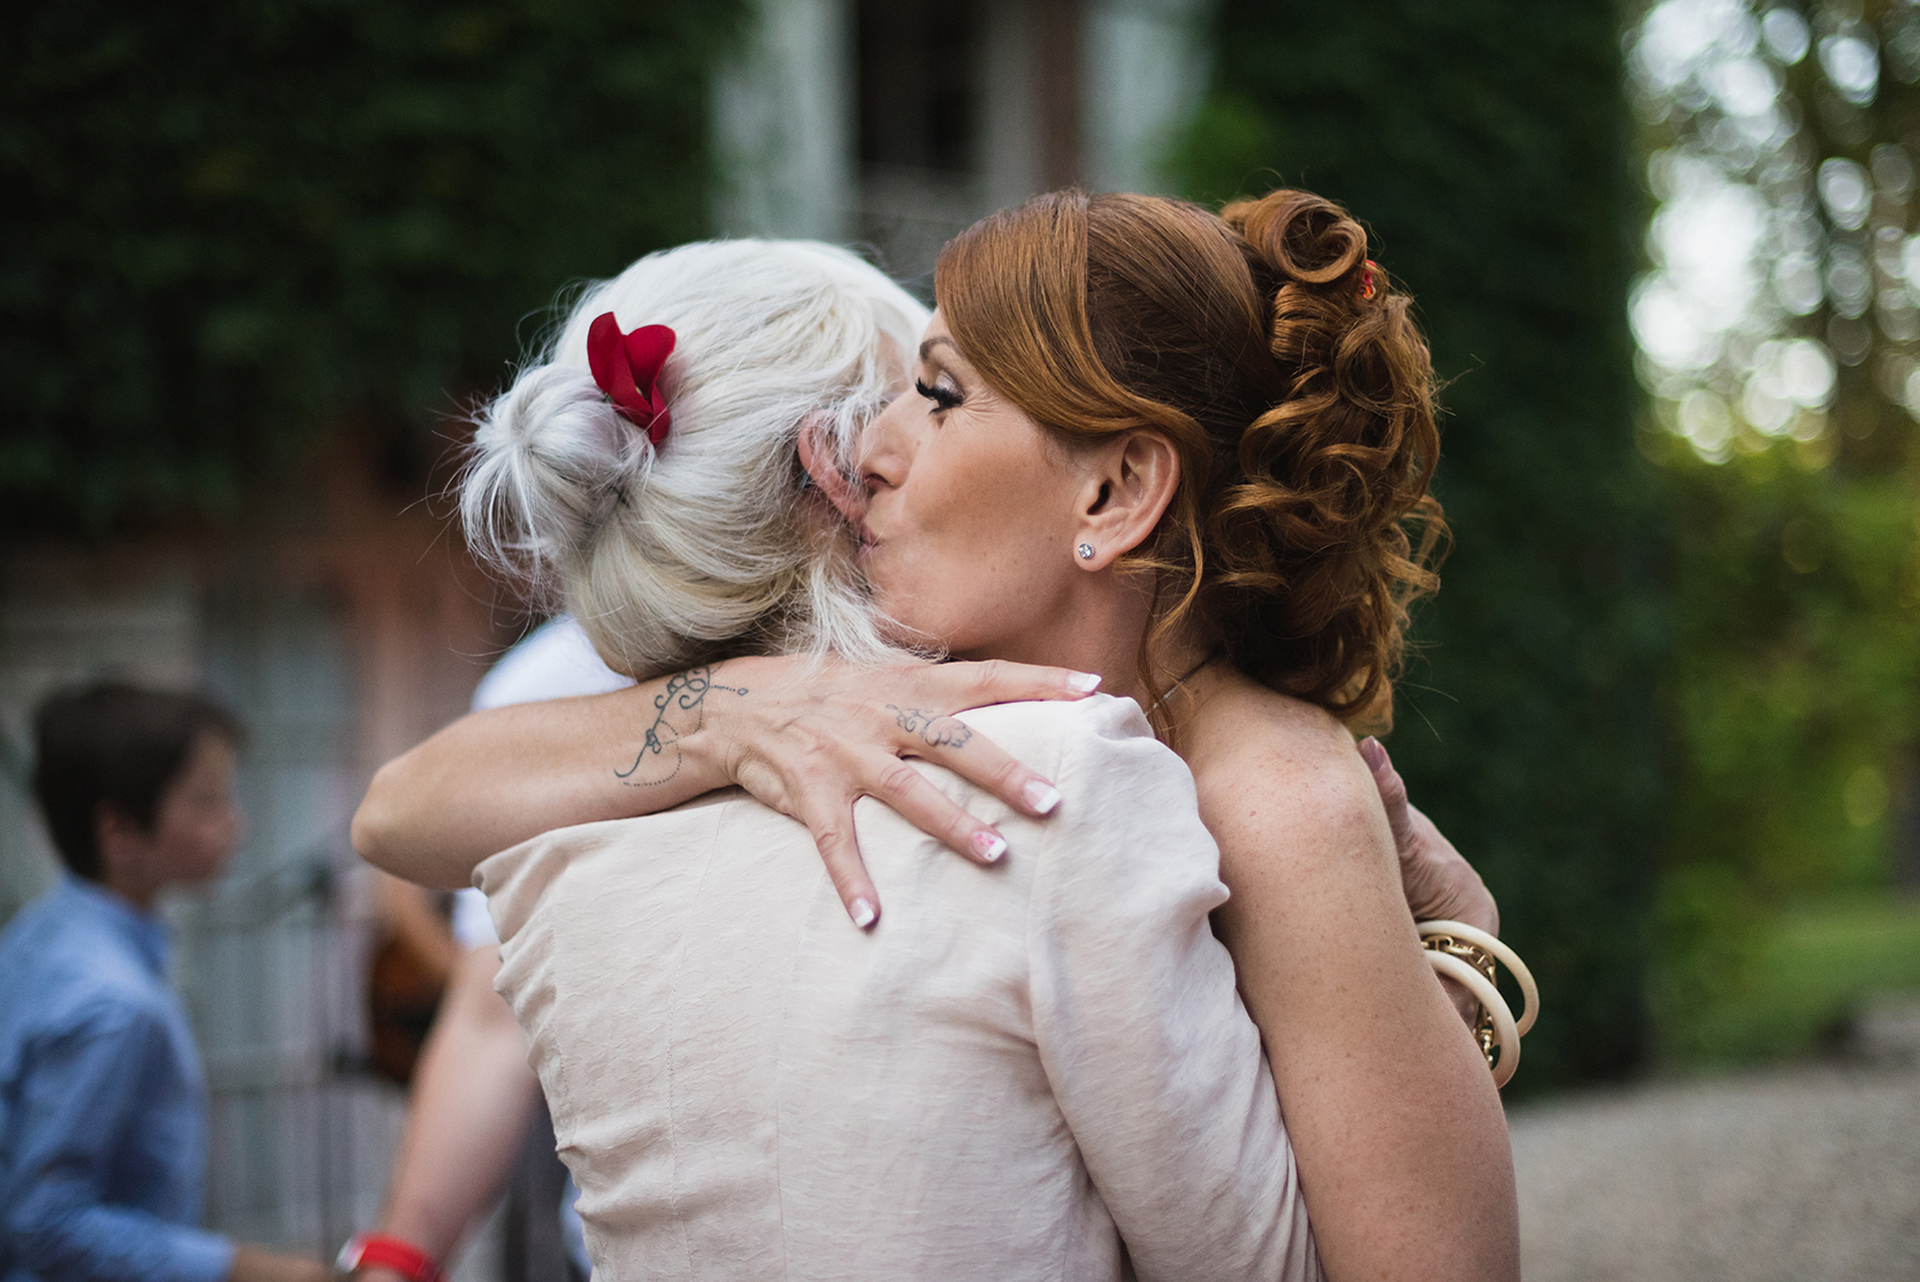 Occitanie Elopement Image from Château Labistoul | The bride shares an emotional moment with one of her family members